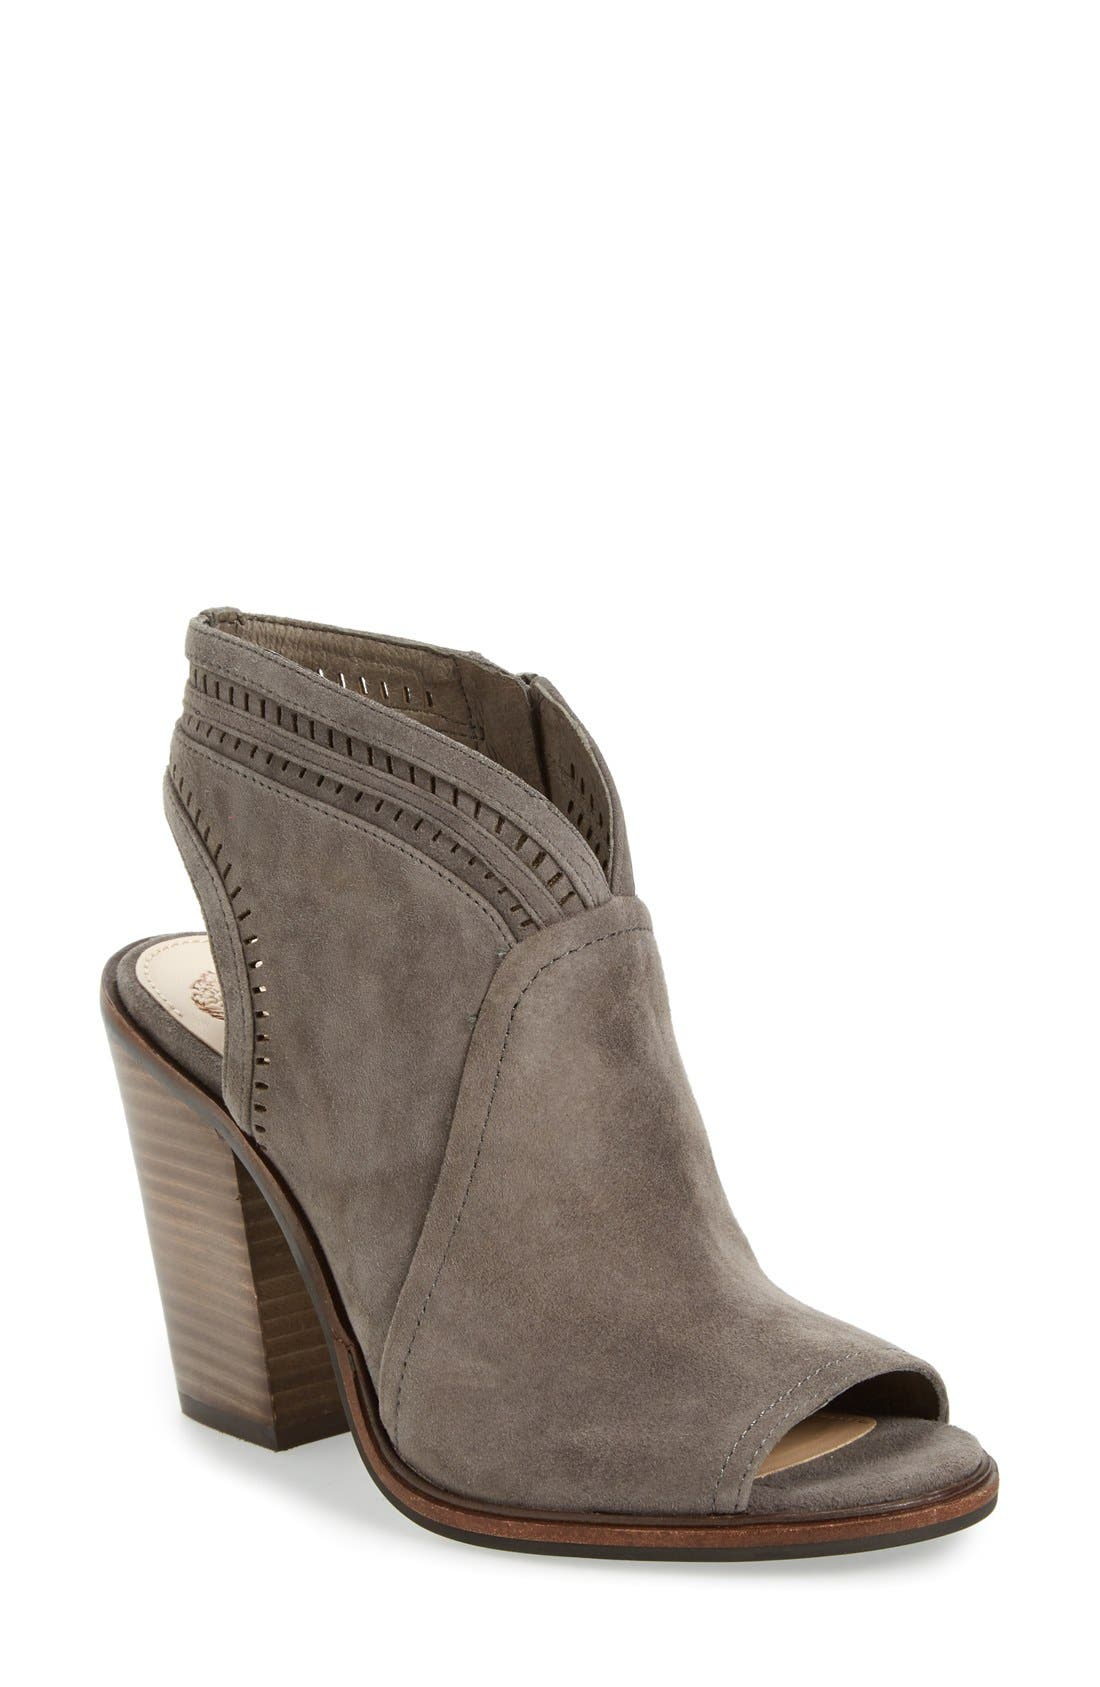 Alternate Image 1 Selected - Vince Camuto 'Koral' Perforated Open Toe Bootie (Women) (Nordstrom Exclusive)